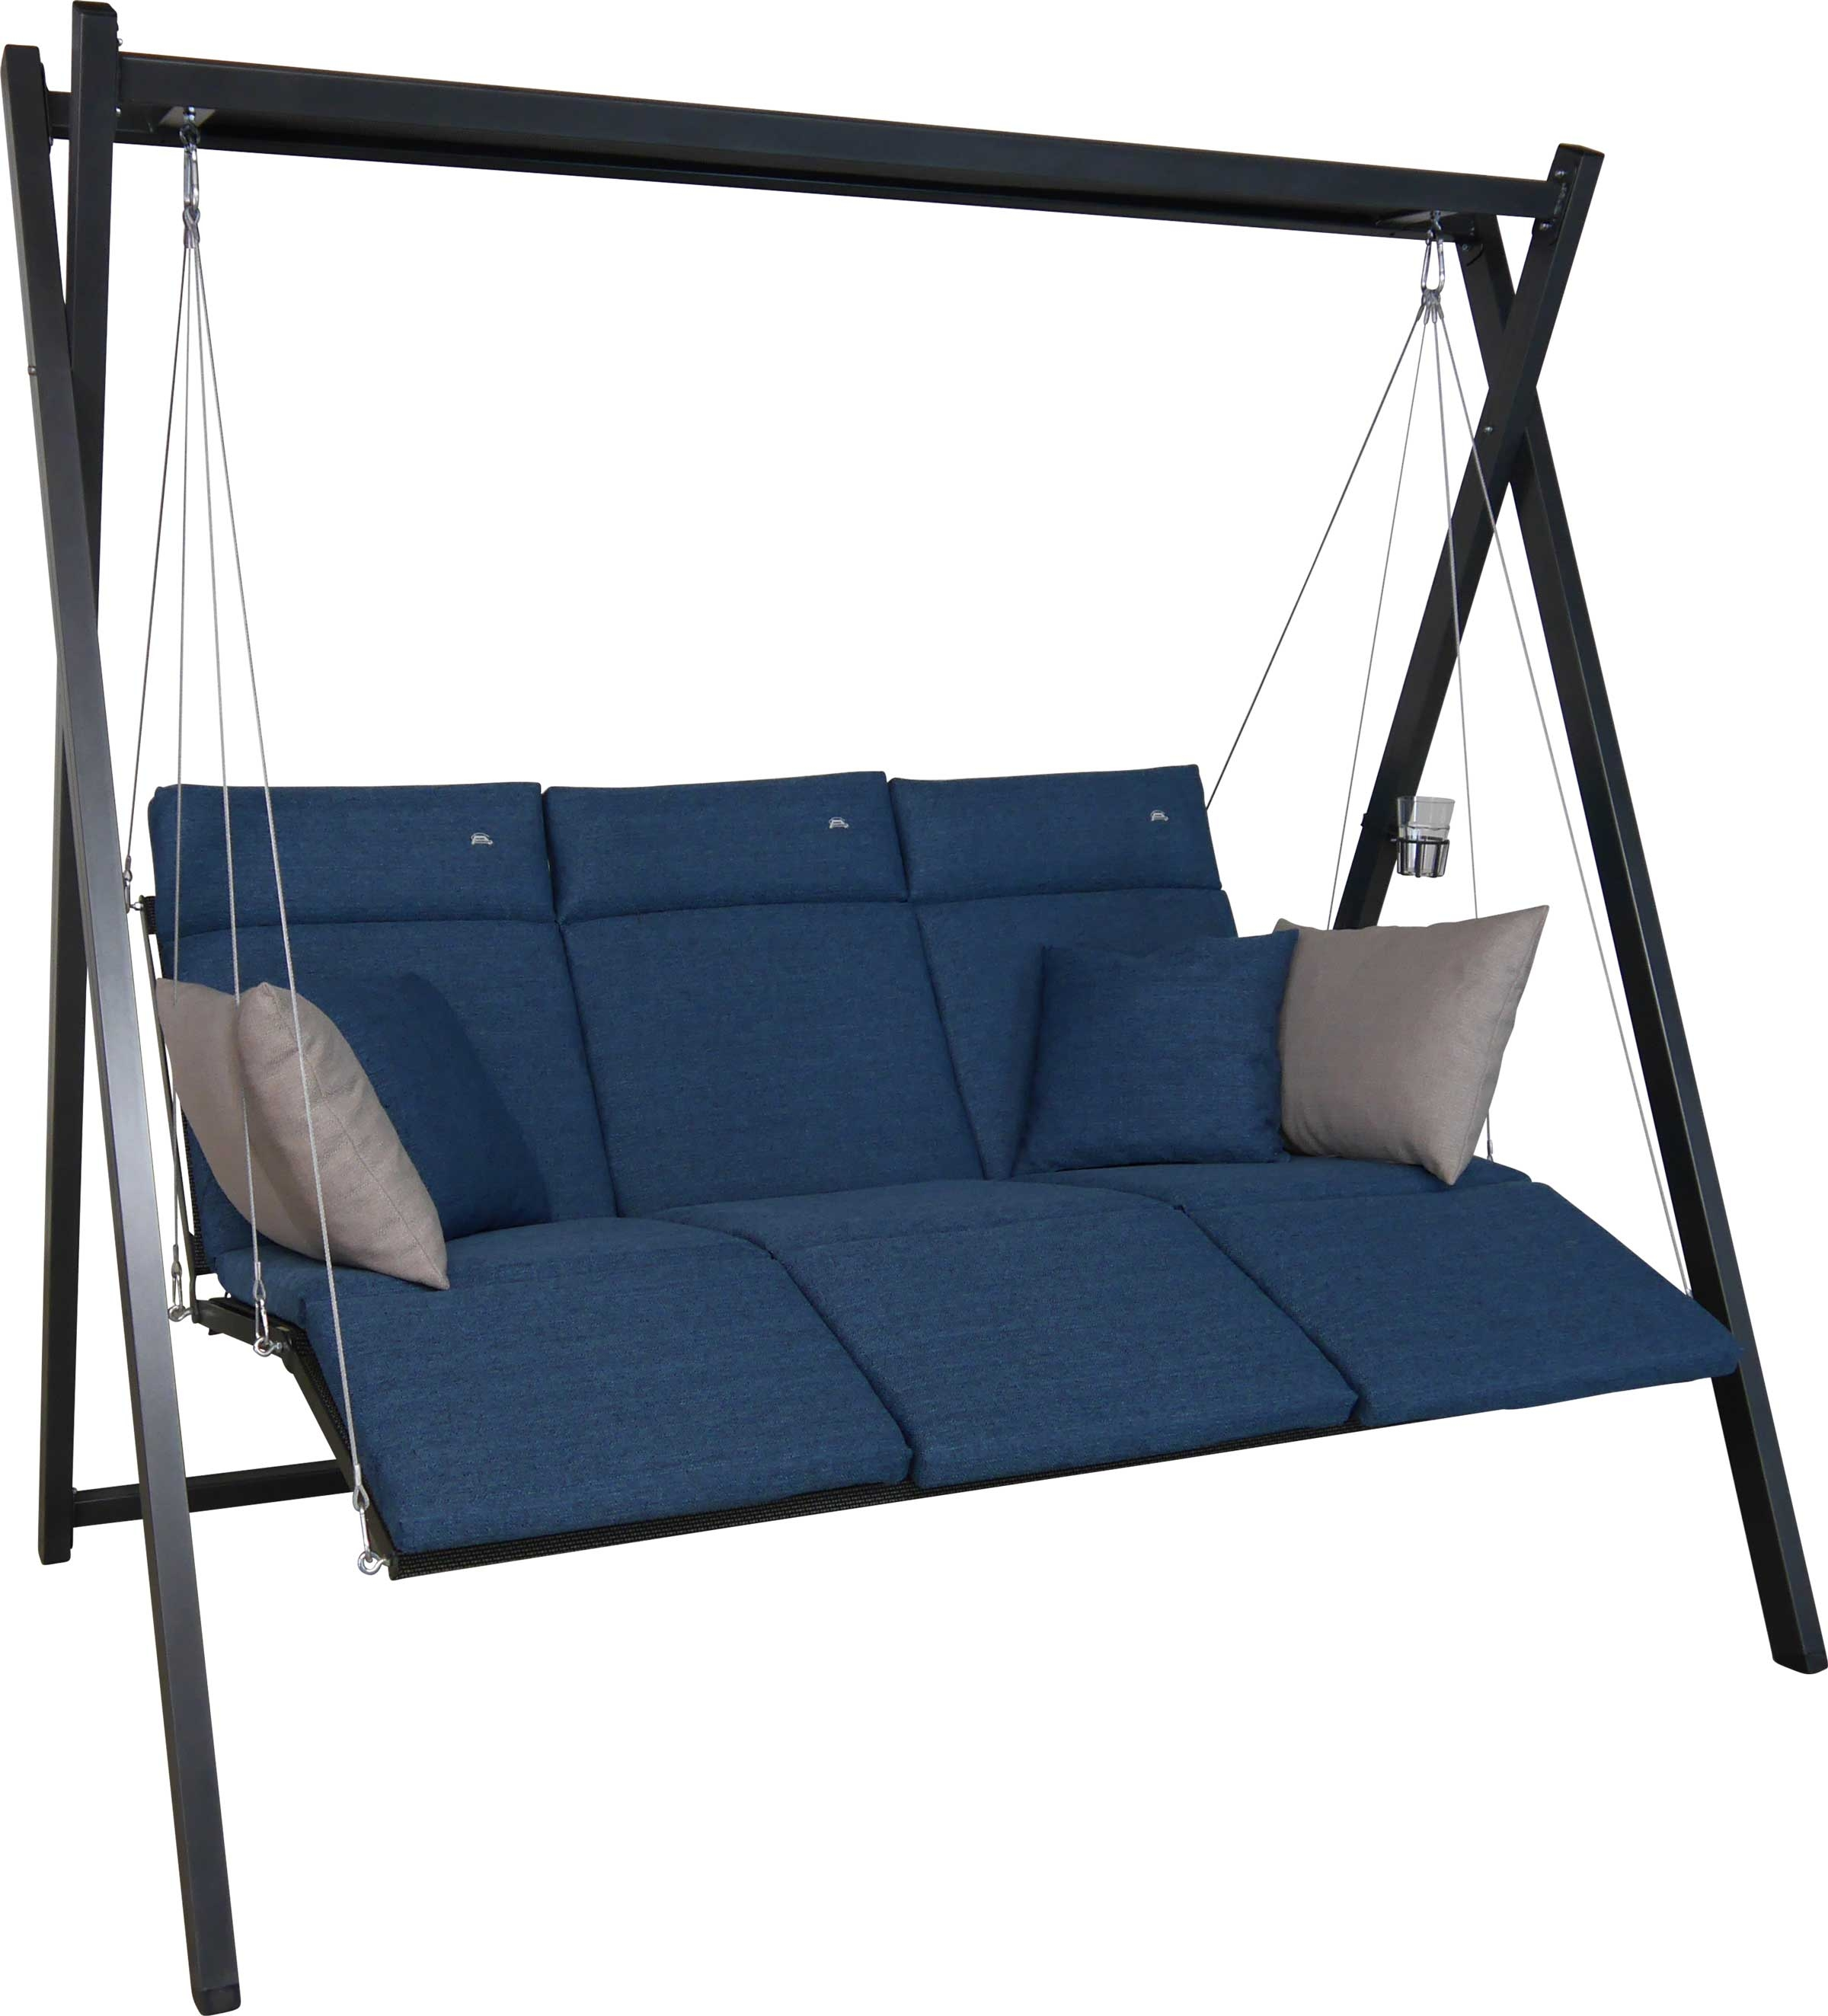 Angerer Hollywoodschaukel Relax Smart denim 3-Sitzer